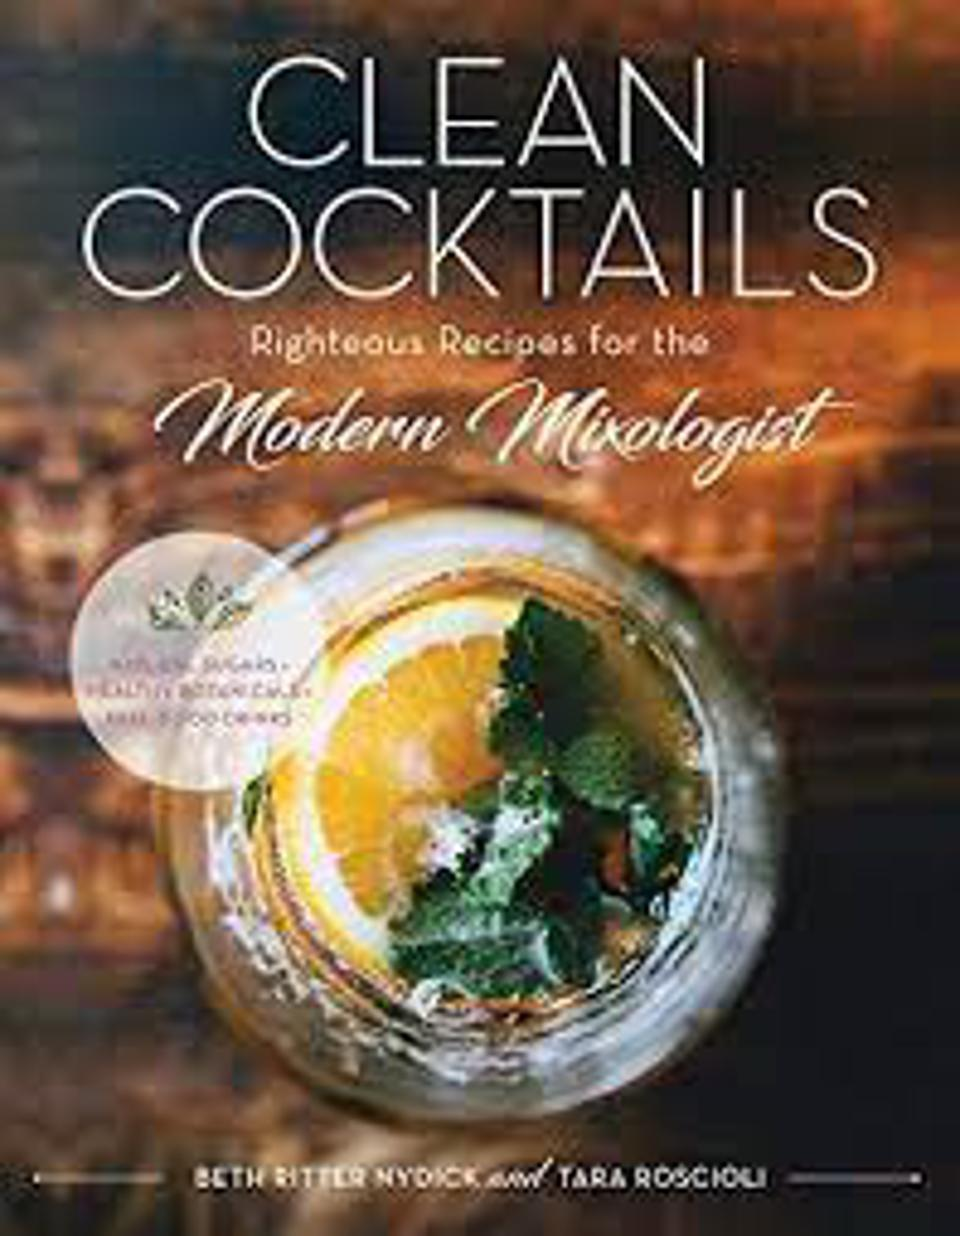 Clean Cocktails, Righteous Recipes for the Modern Mixologist